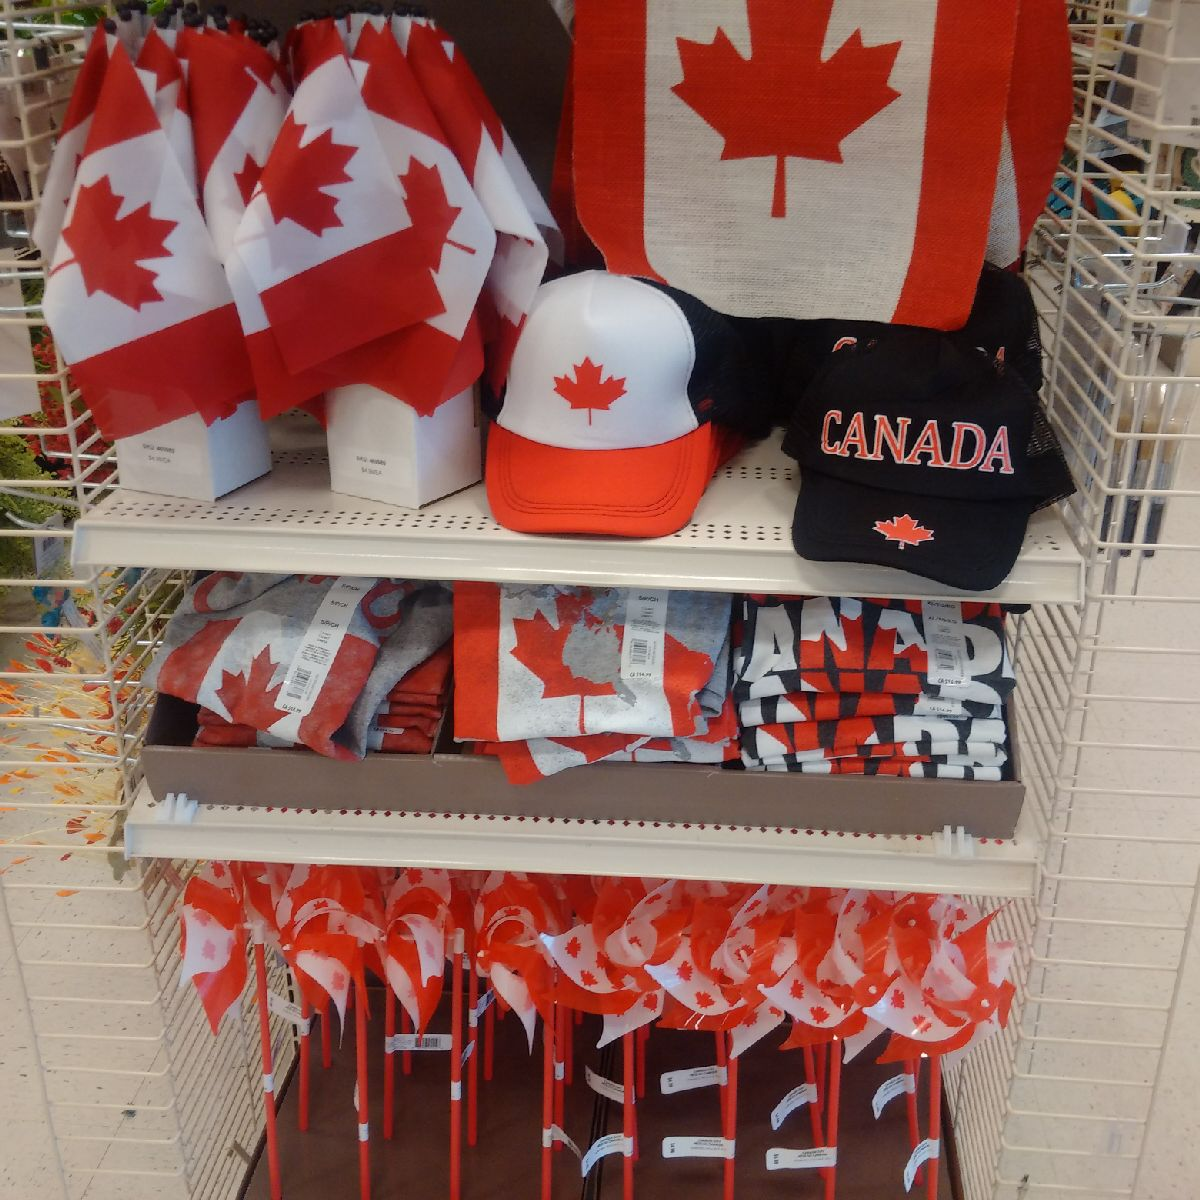 michael's canada 150 items